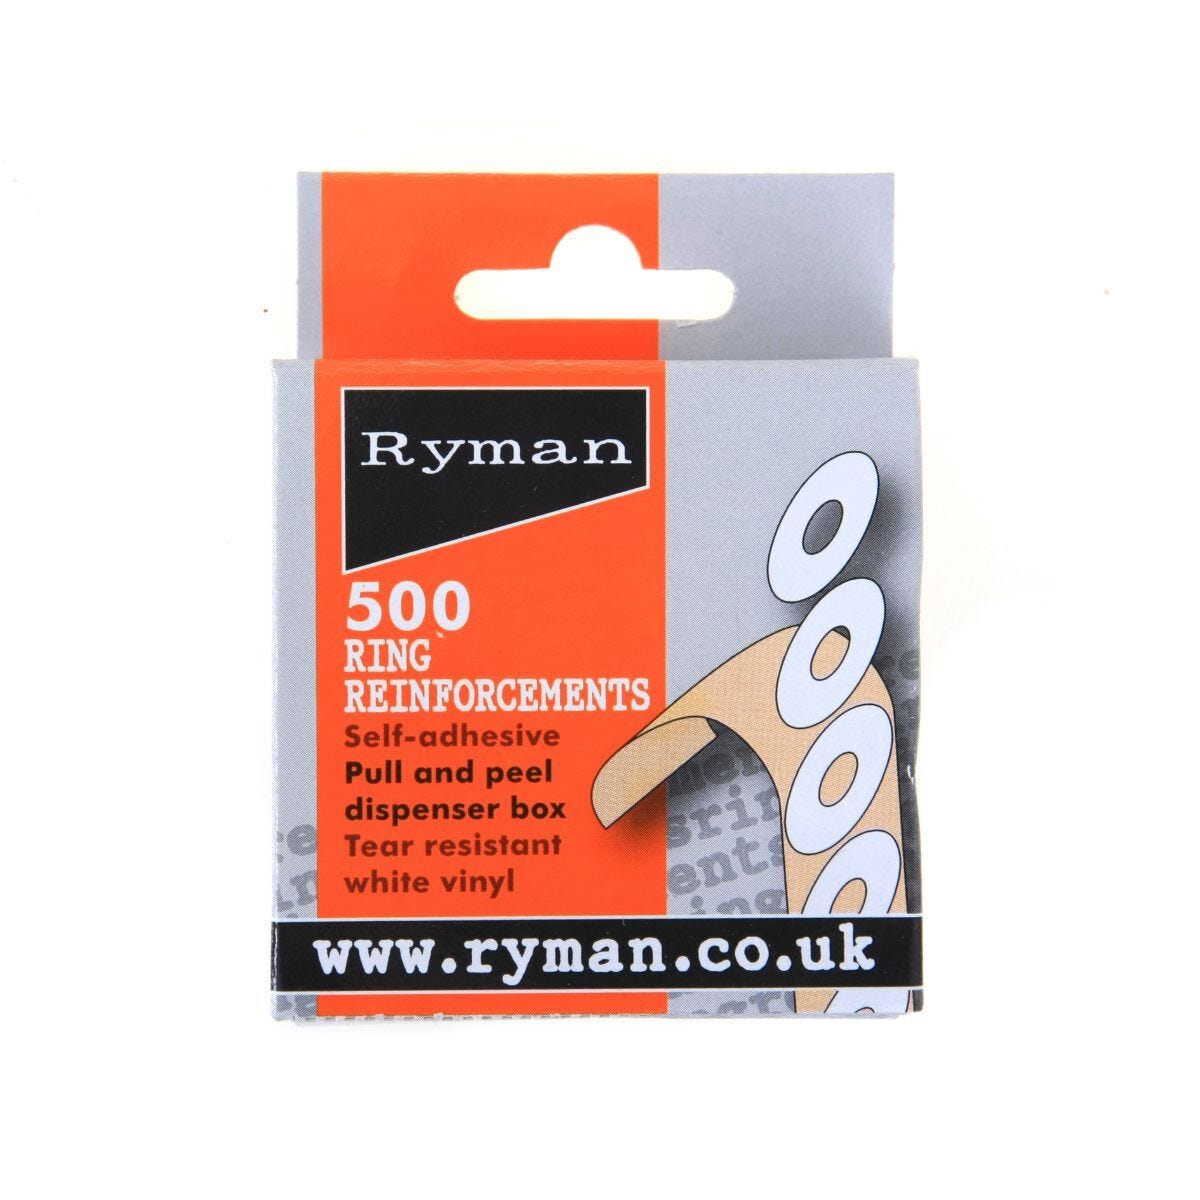 Ryman Ring Reinforcements Pack of 500